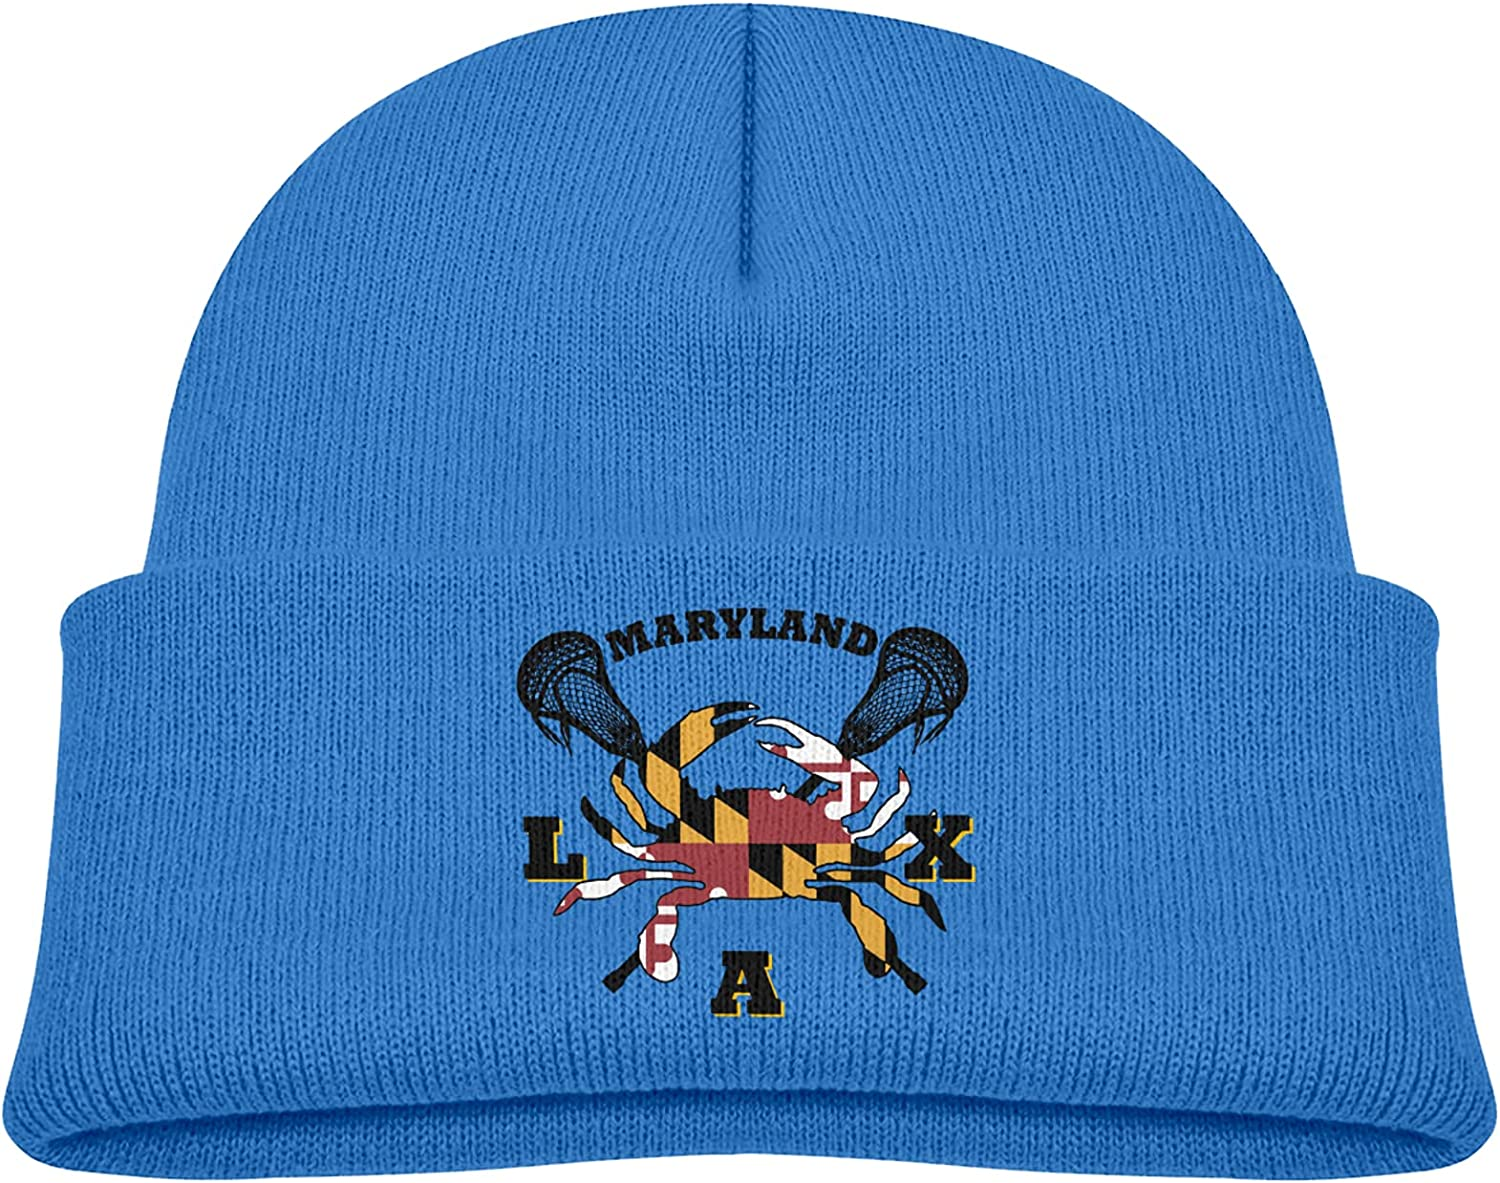 Maryland Crab Lacrosse Trendy Koopy Winter Hats Attention brand Cap Knit Very popular Beanie